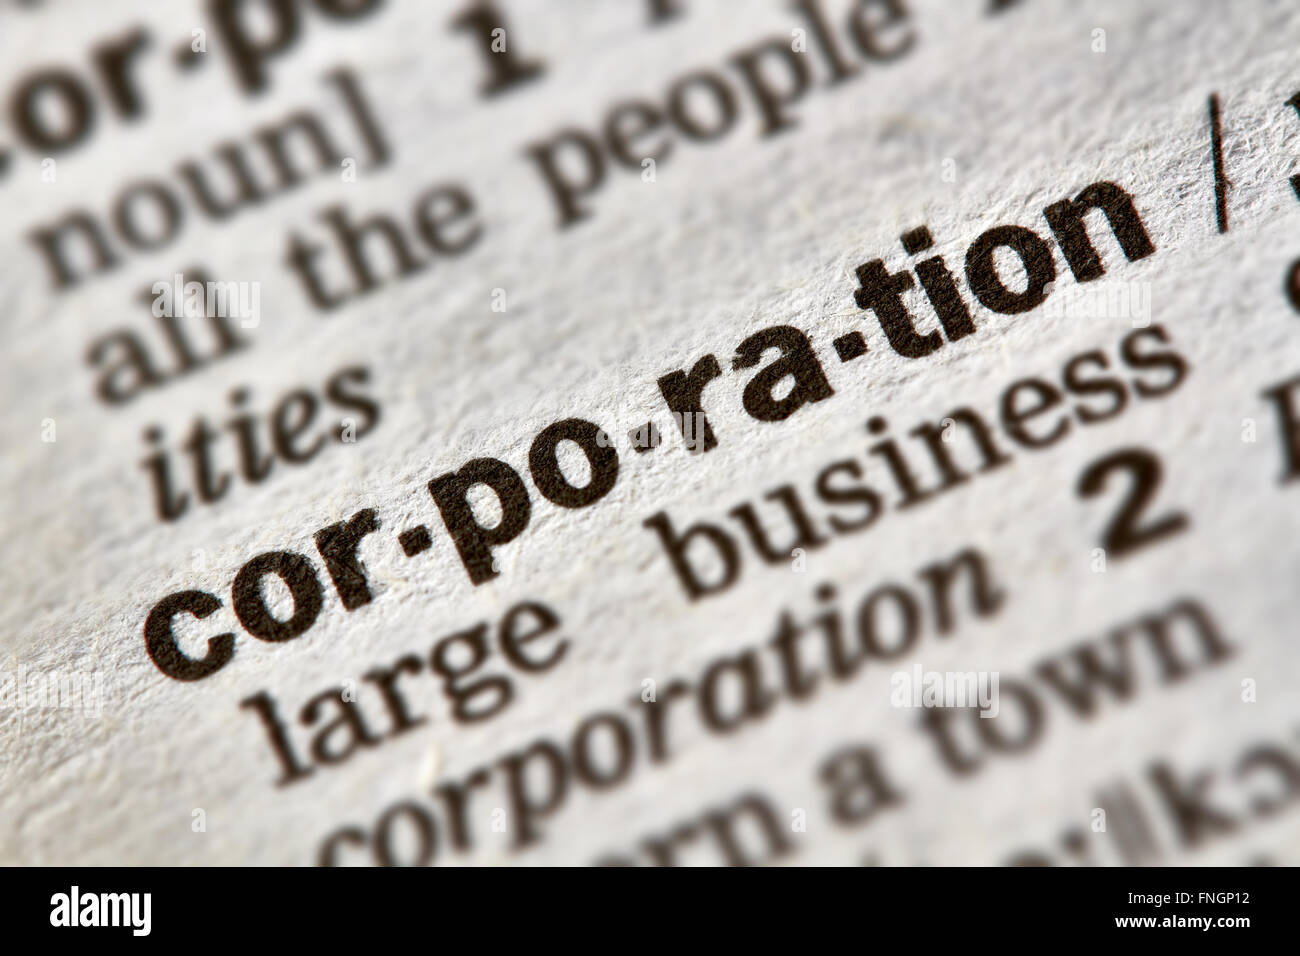 Corporation Word Definition Text in Dictionary Page - Stock Image